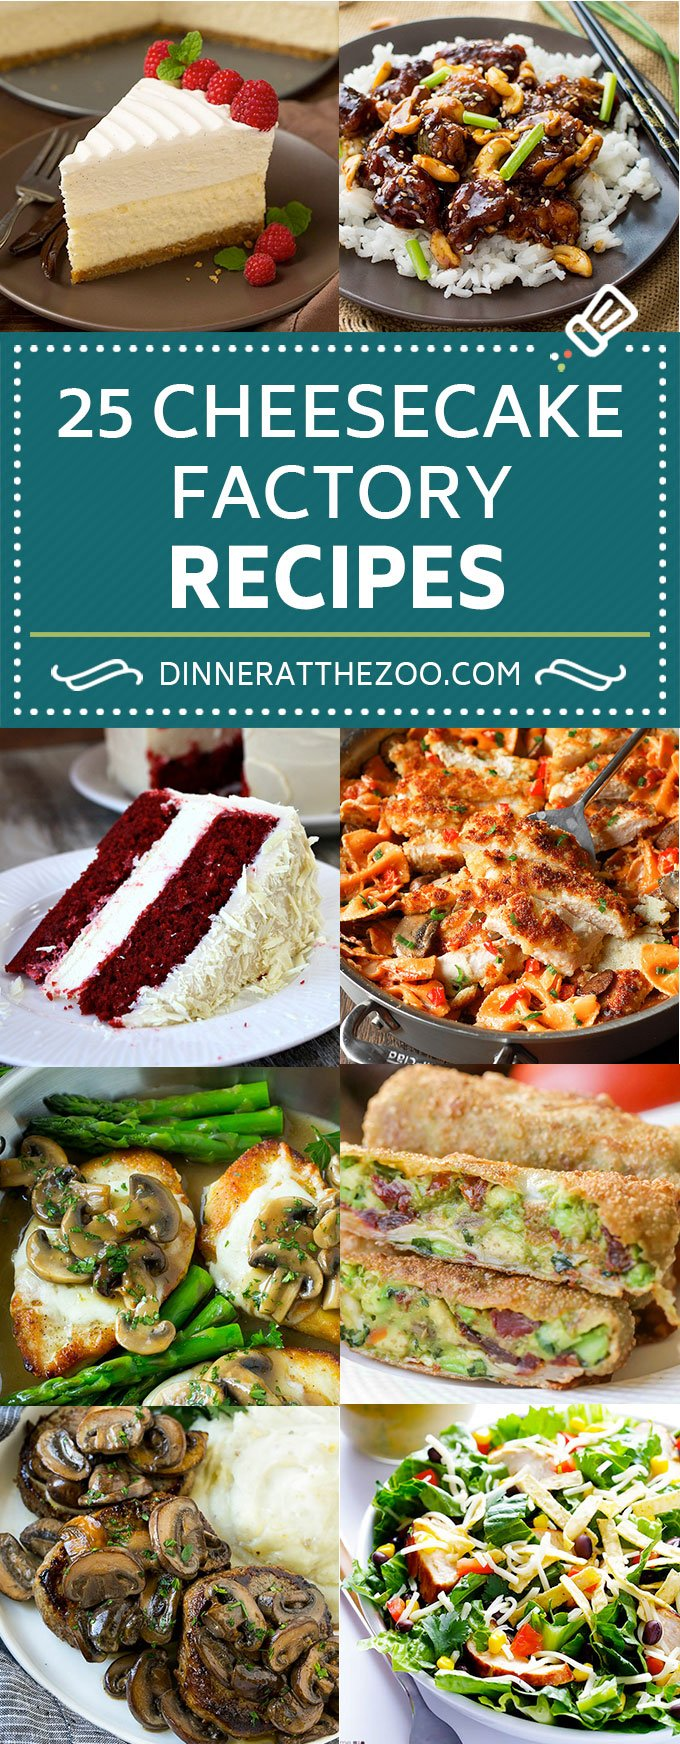 25 Cheesecake Factory Recipes | Cheesecake Factory Copycat Recipes | Restaurant Copycat Recipes #cheesecake #dinneratthezoo #dinner #pasta #chicken